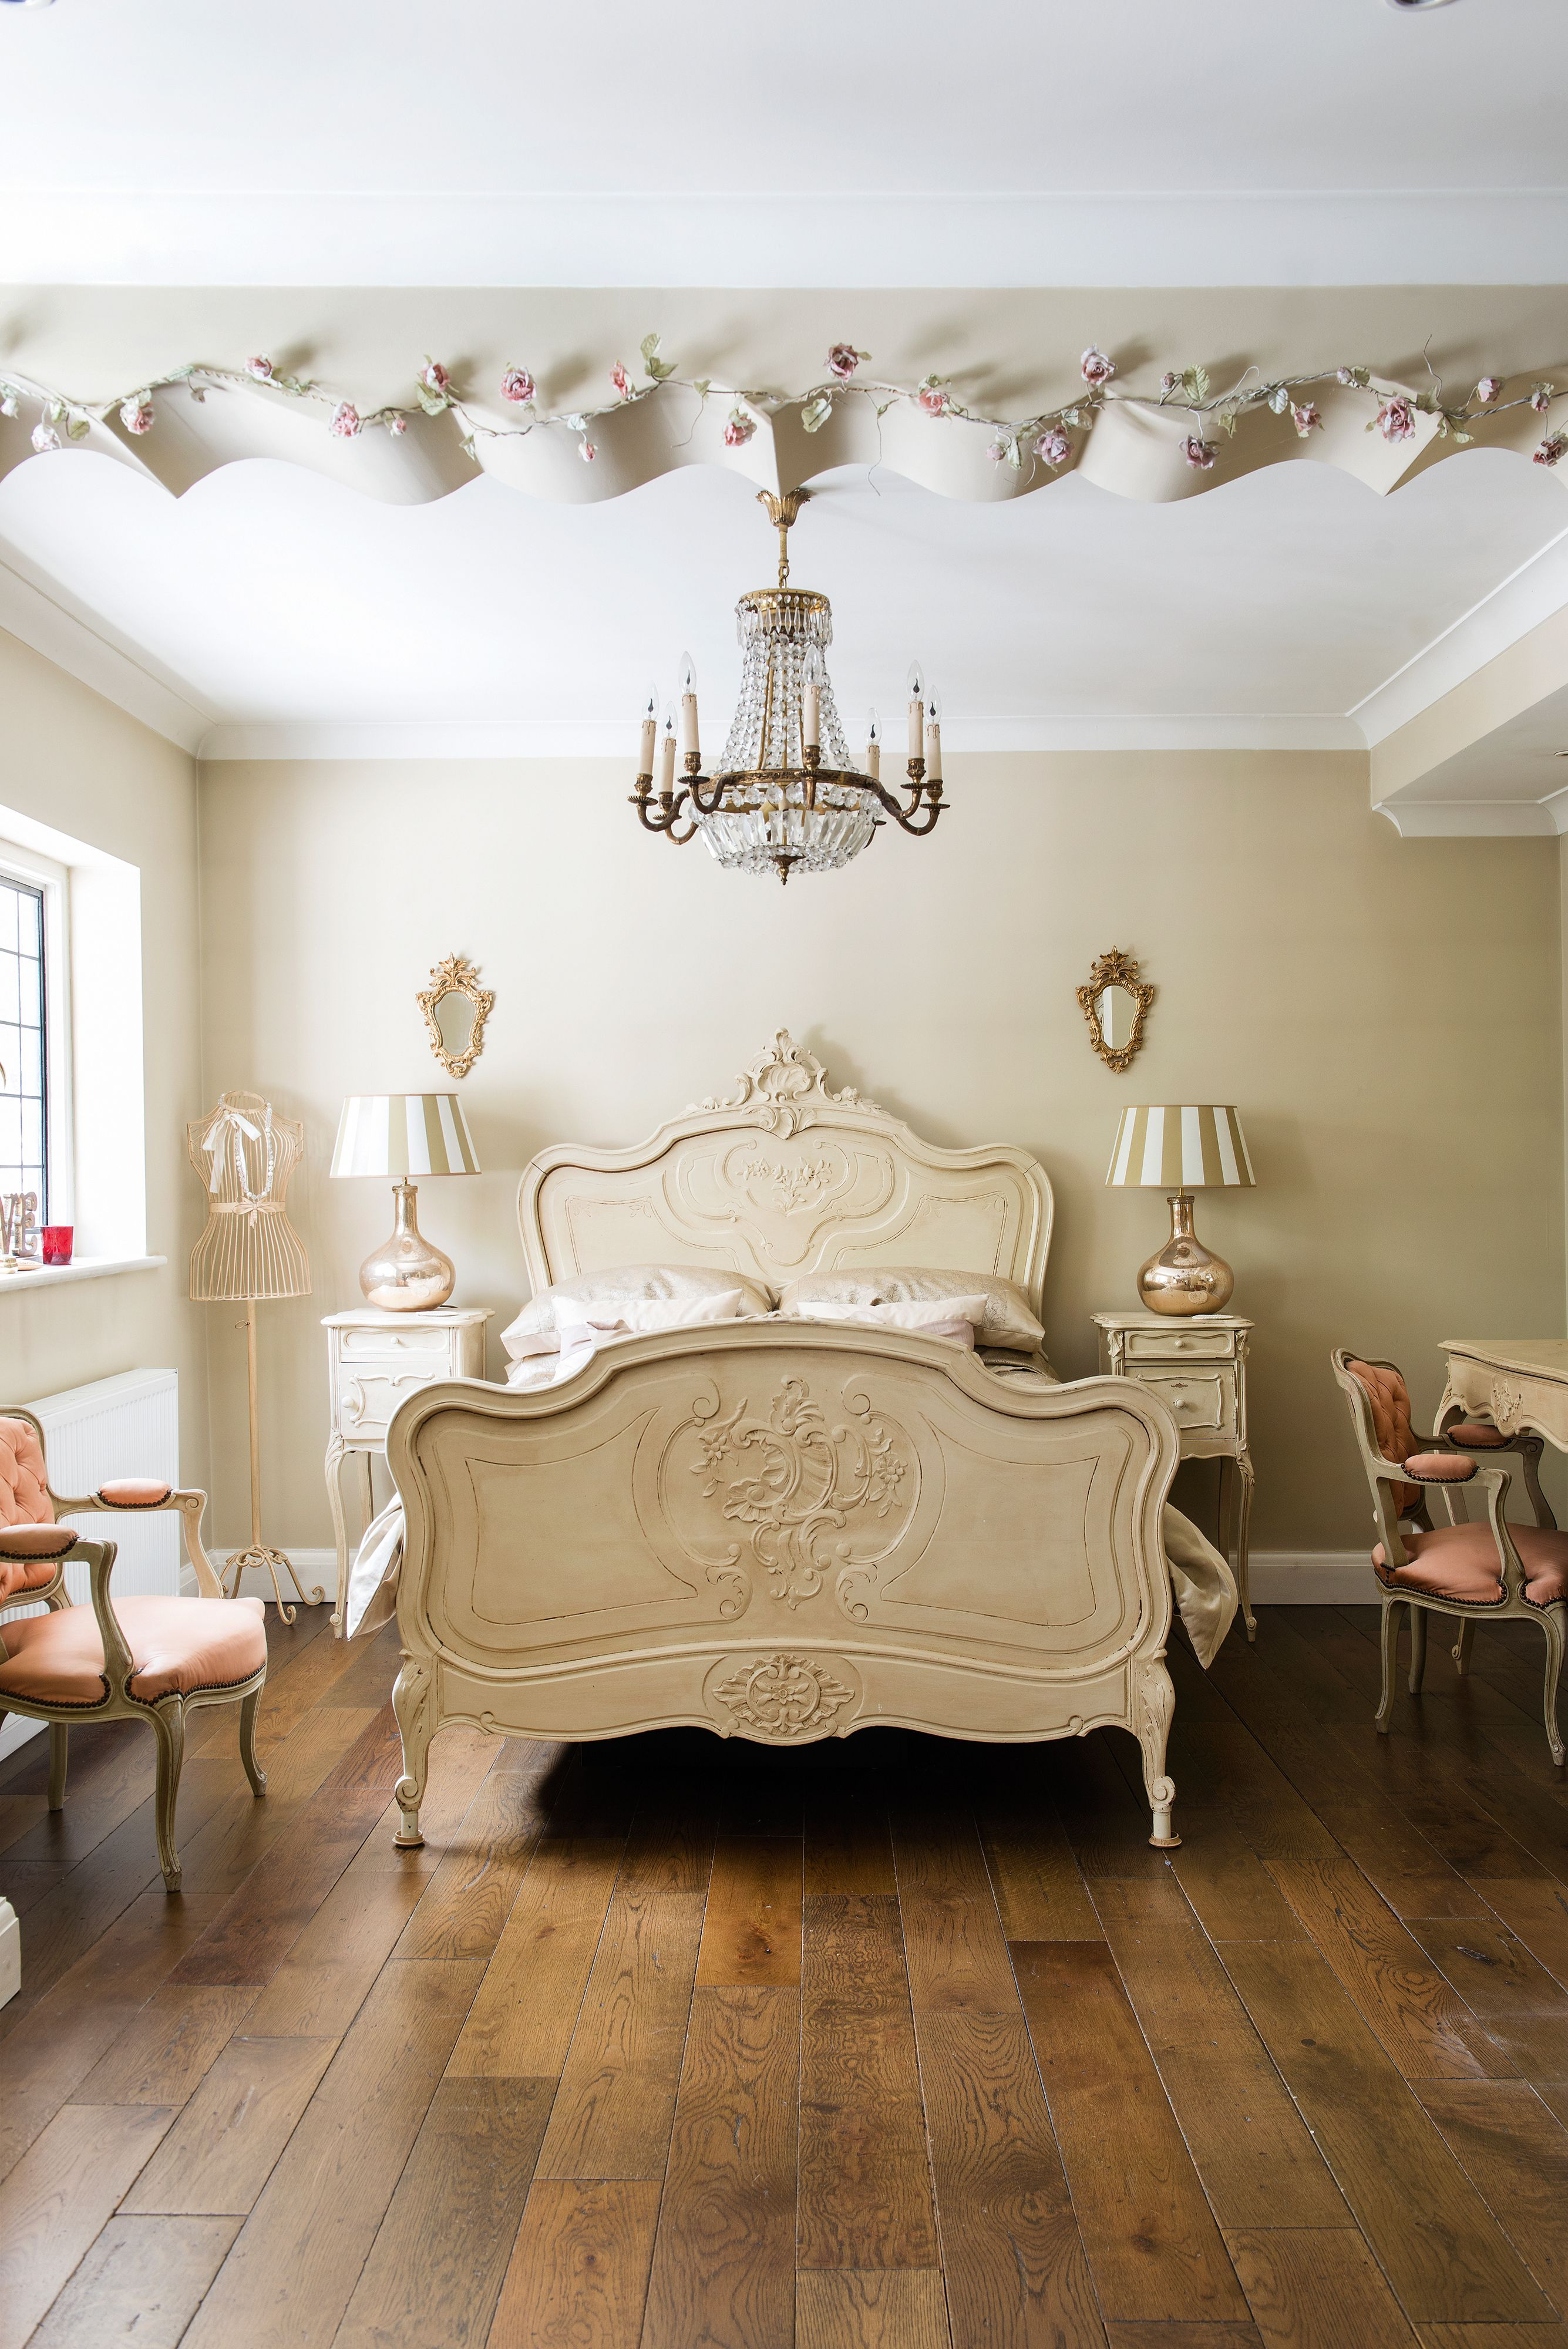 French bedroom ideas  French style bedroom, French style bed